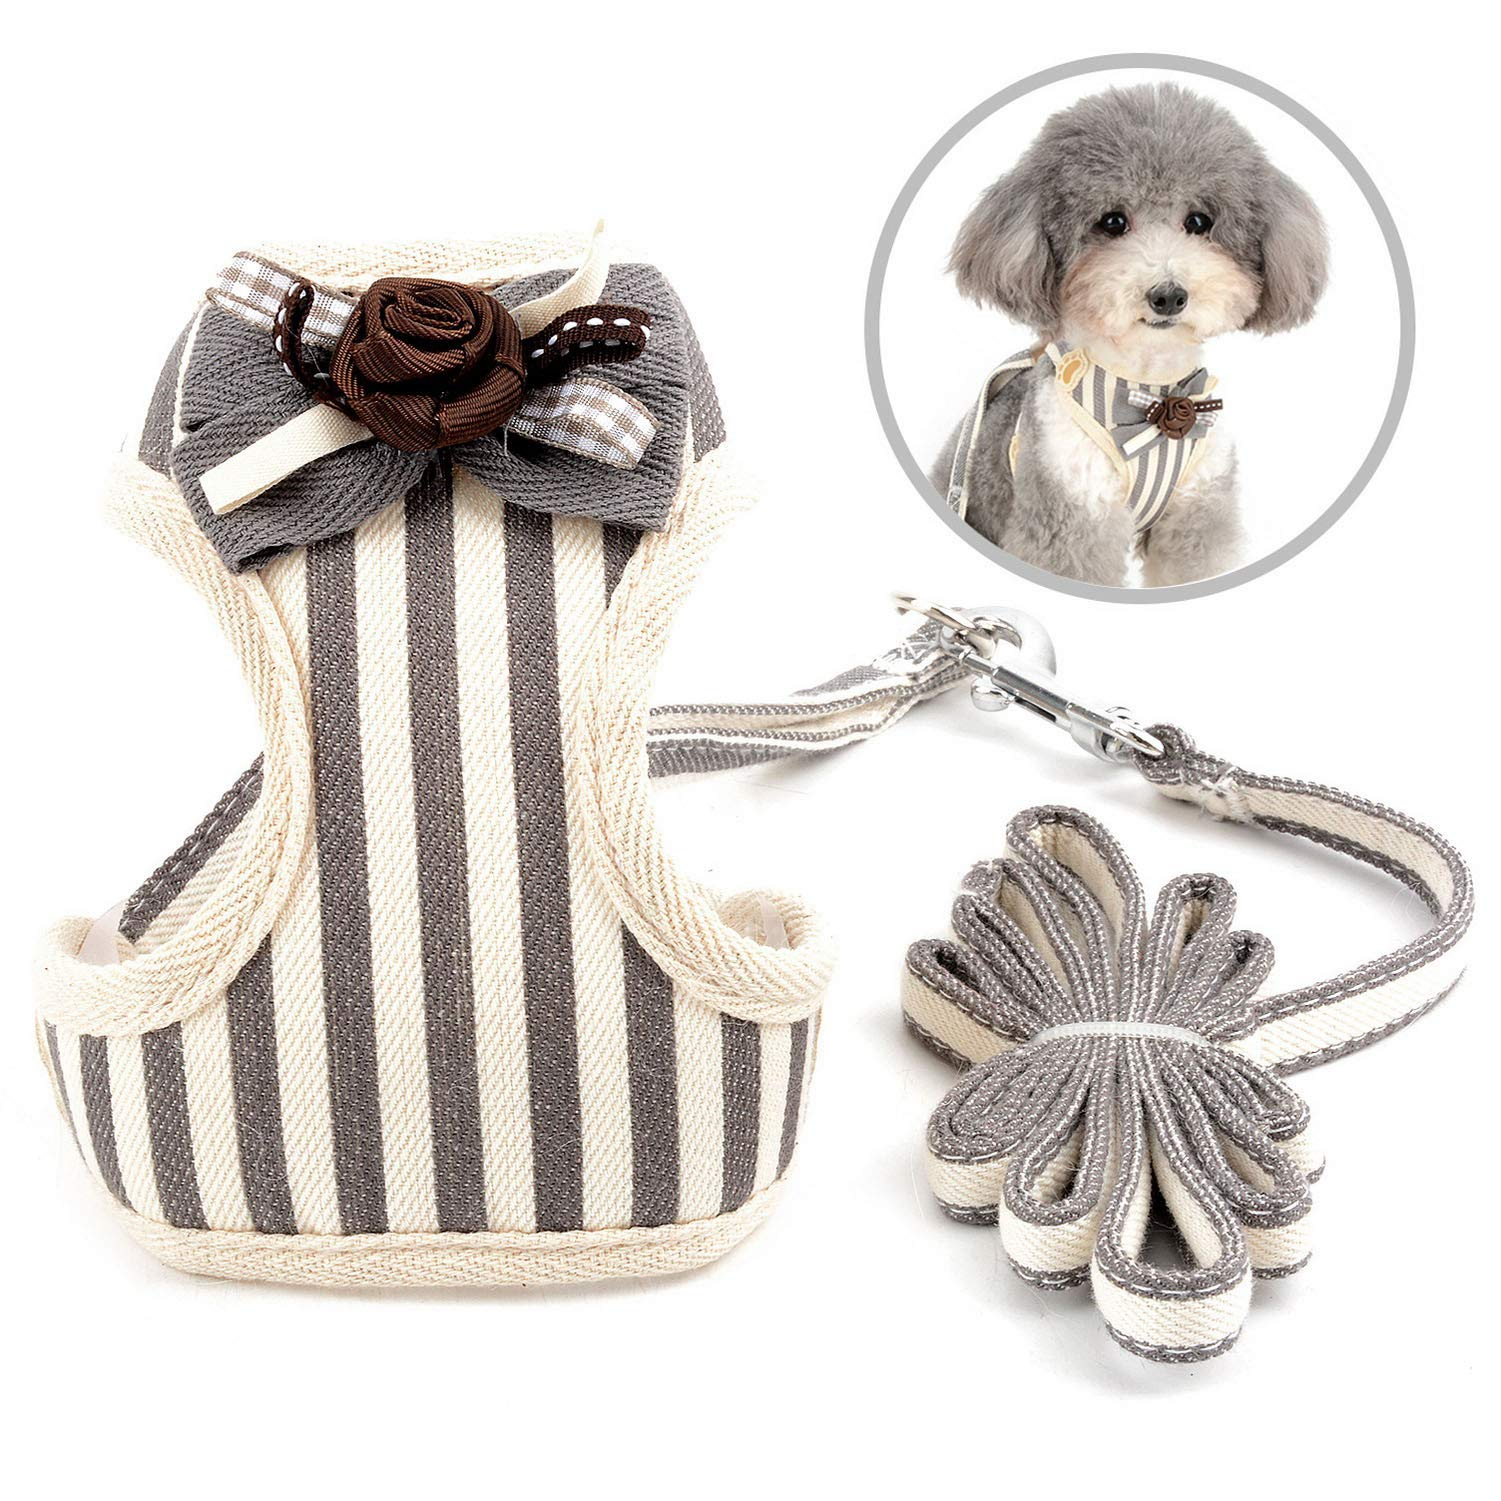 Zunea No Pull Dog Harness and Leash Set for Small Dogs Adjustable Striped Formal Tuxedo Vest Harnesses with Bow Tie for Puppy Girl Boy, Mesh Padded Pet Cat Harness Escape Proof for Walking Gray XS by Zunea